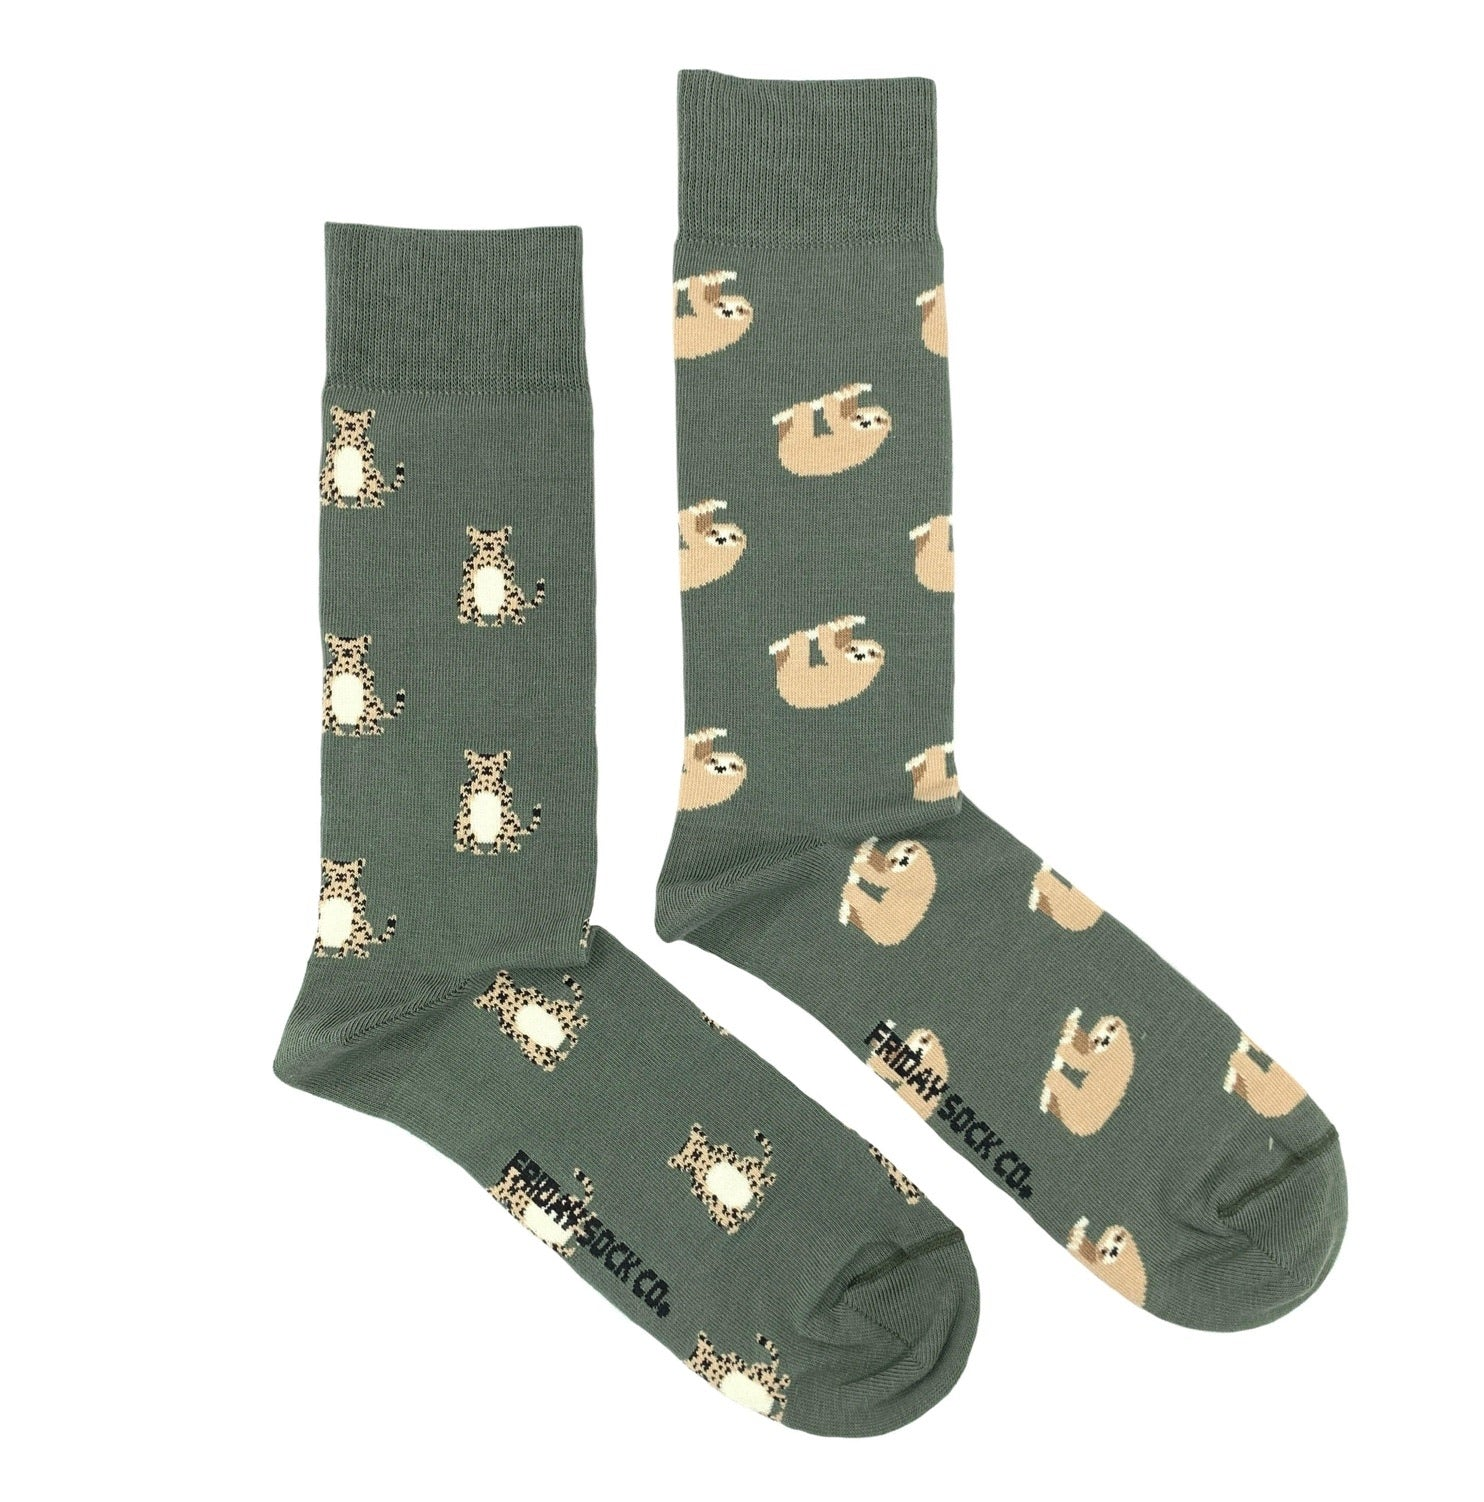 Sloth & Cheetah Women's Socks